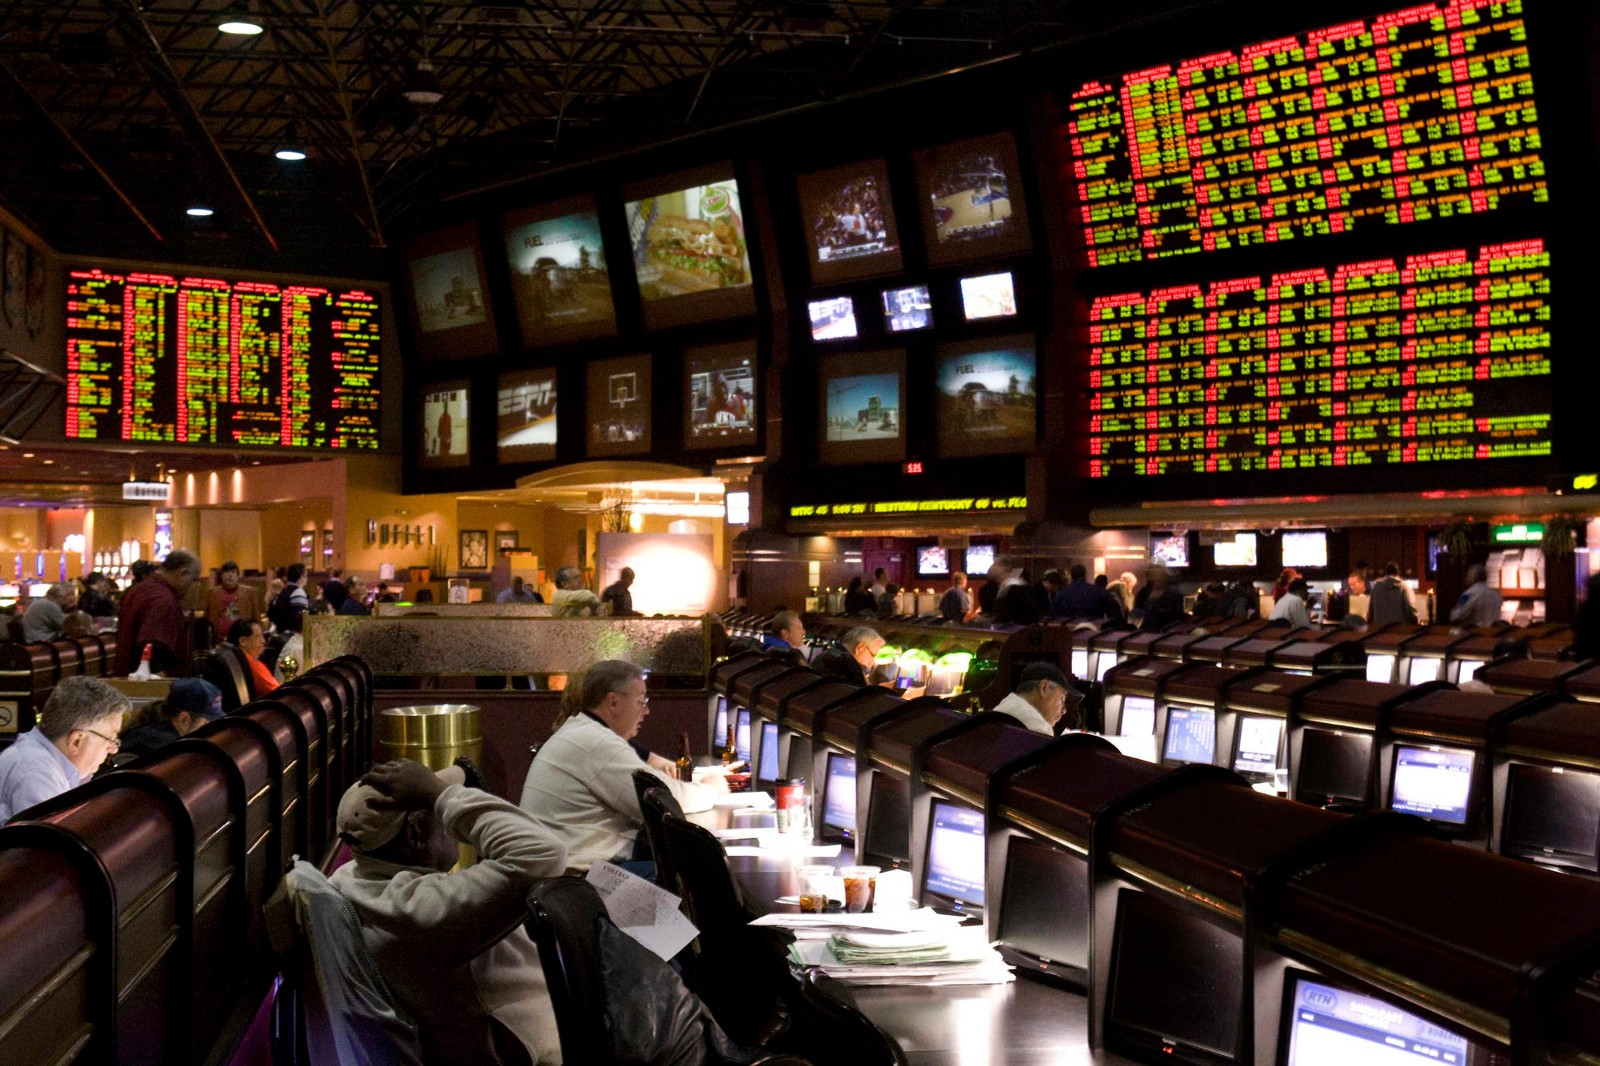 Vegas online nfl betting yueda mining bitcoins